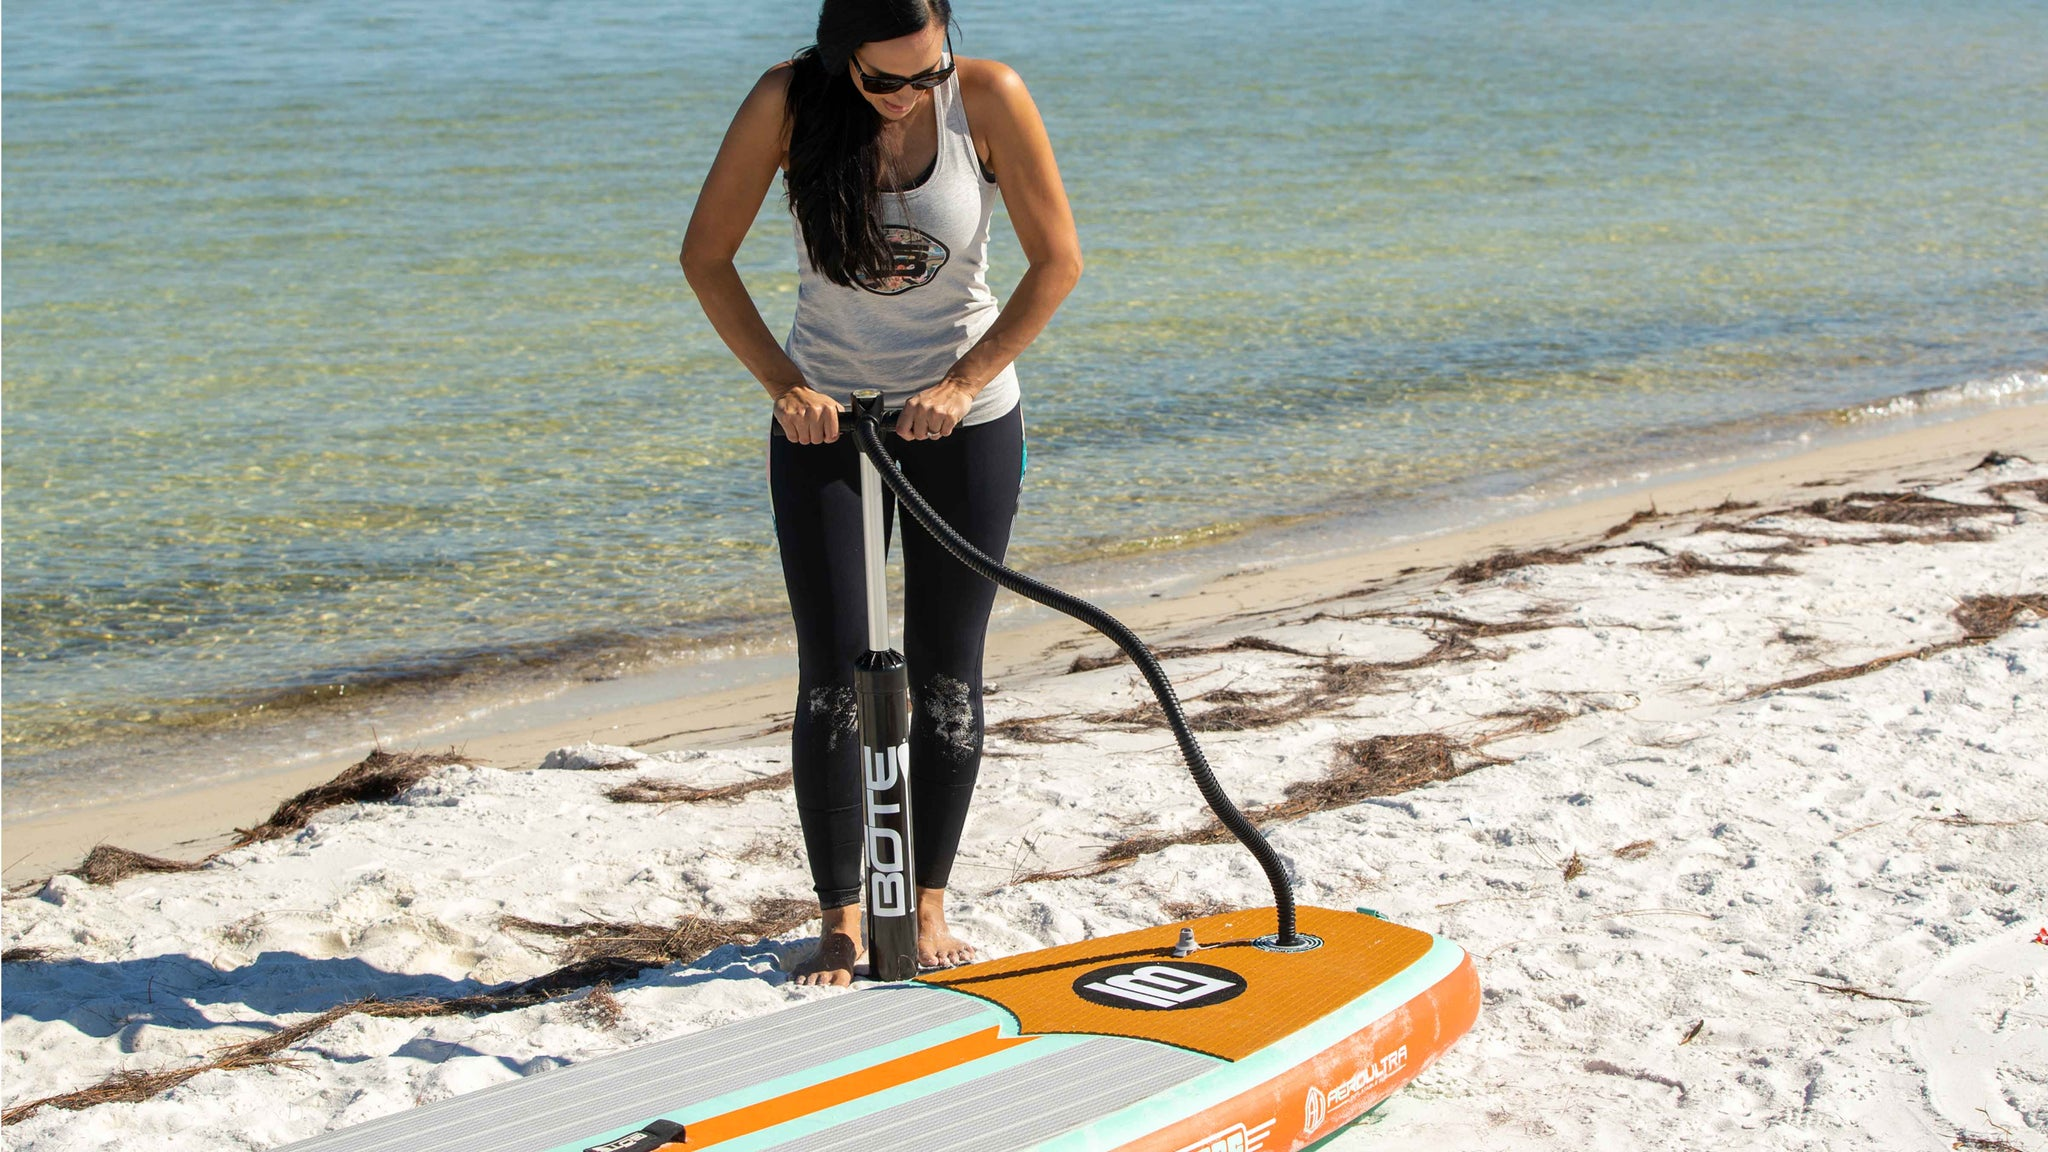 How to Inflate and Deflate a Paddle Board